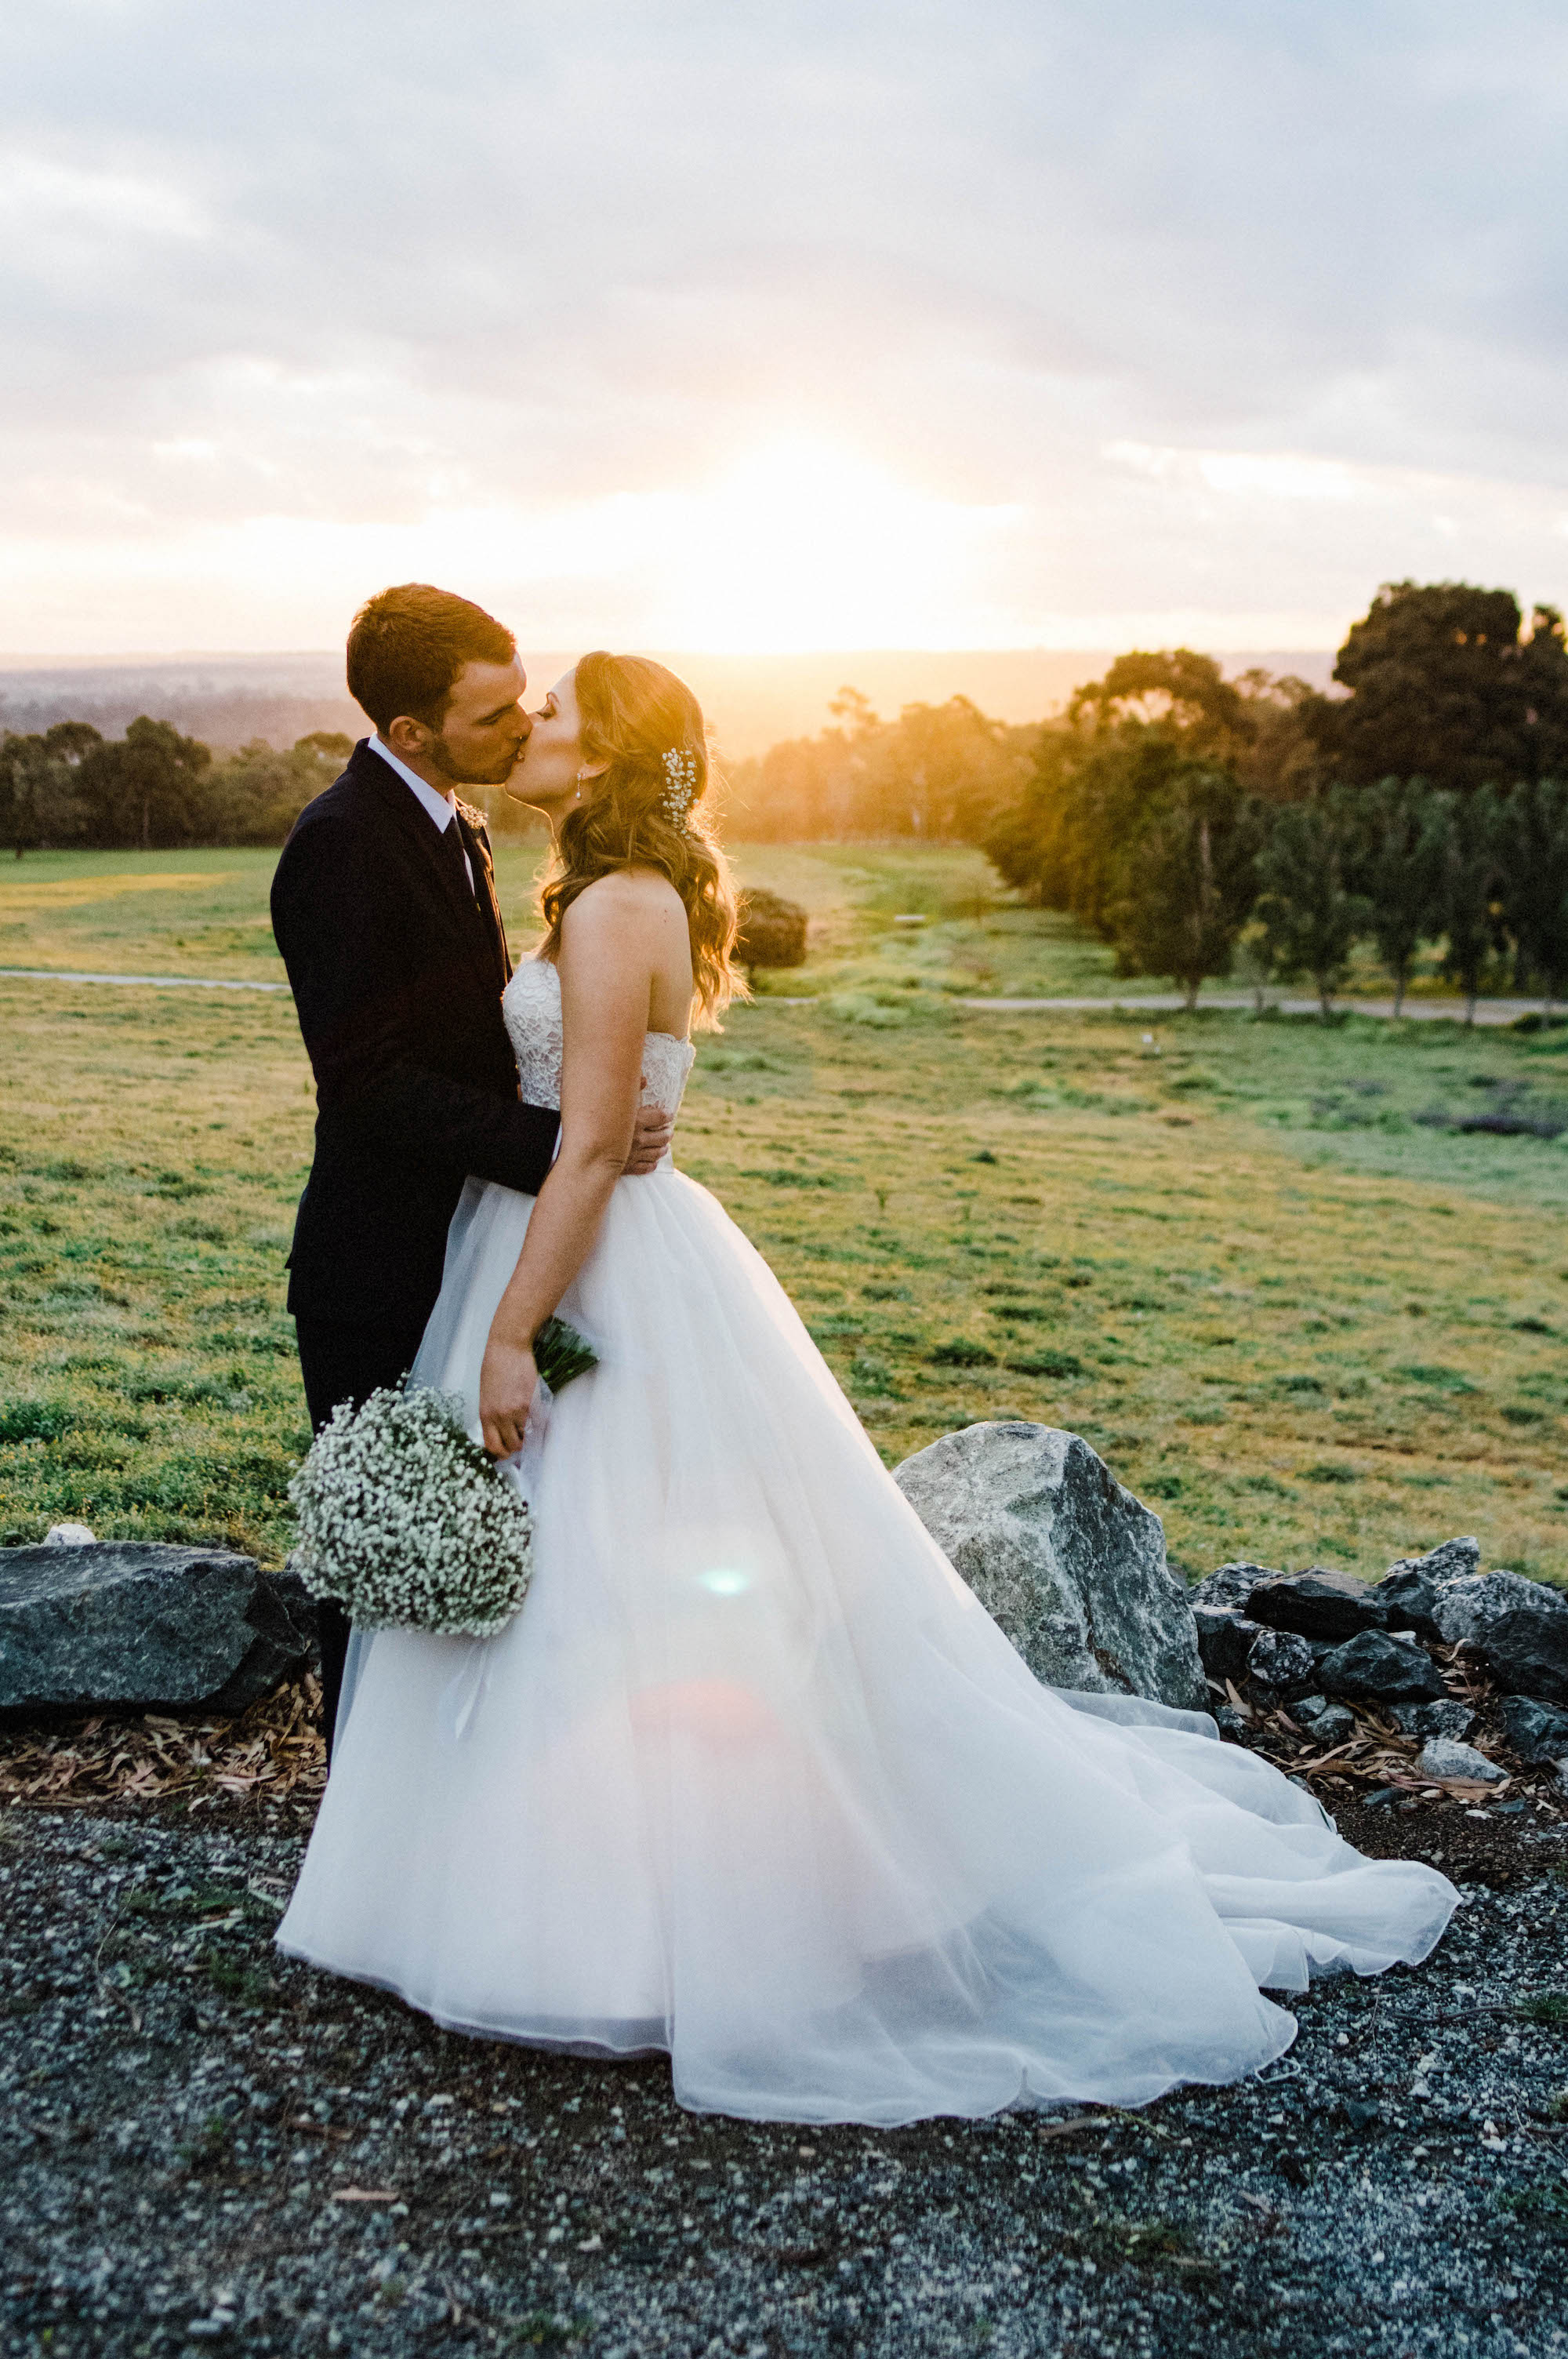 Portrait wedding photography of the bride & groom kissing in front of an incredible September sunset.